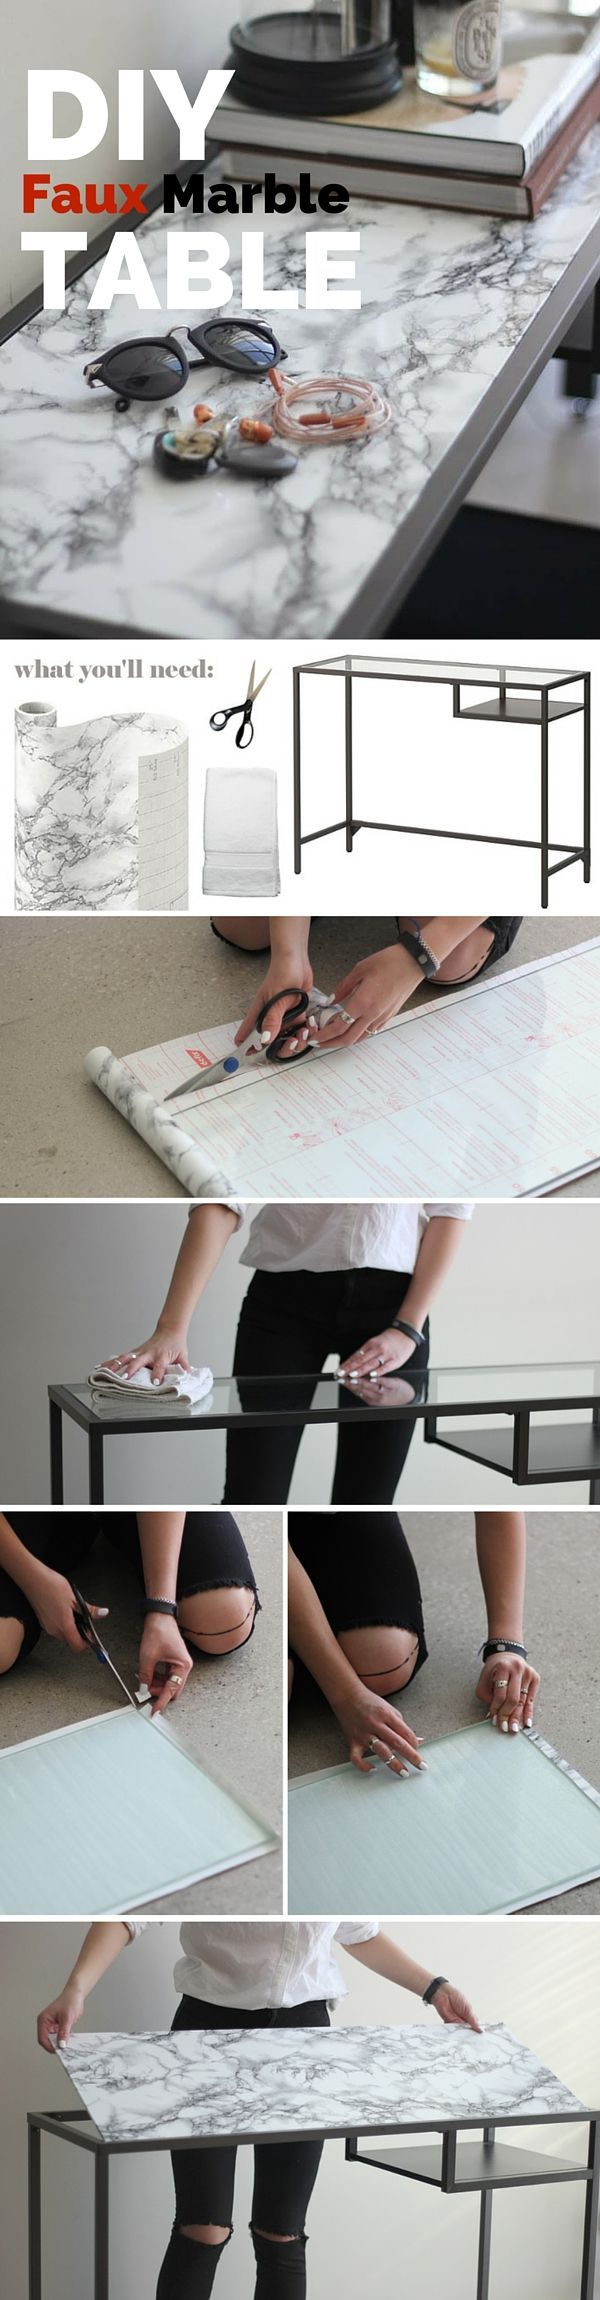 cool Check out the tutorial: #DIY Faux Marble Table #crafts #decor... by http://www.best100-homedecorpictures.us/diy-home-decor/check-out-the-tutorial-diy-faux-marble-table-crafts-decor/